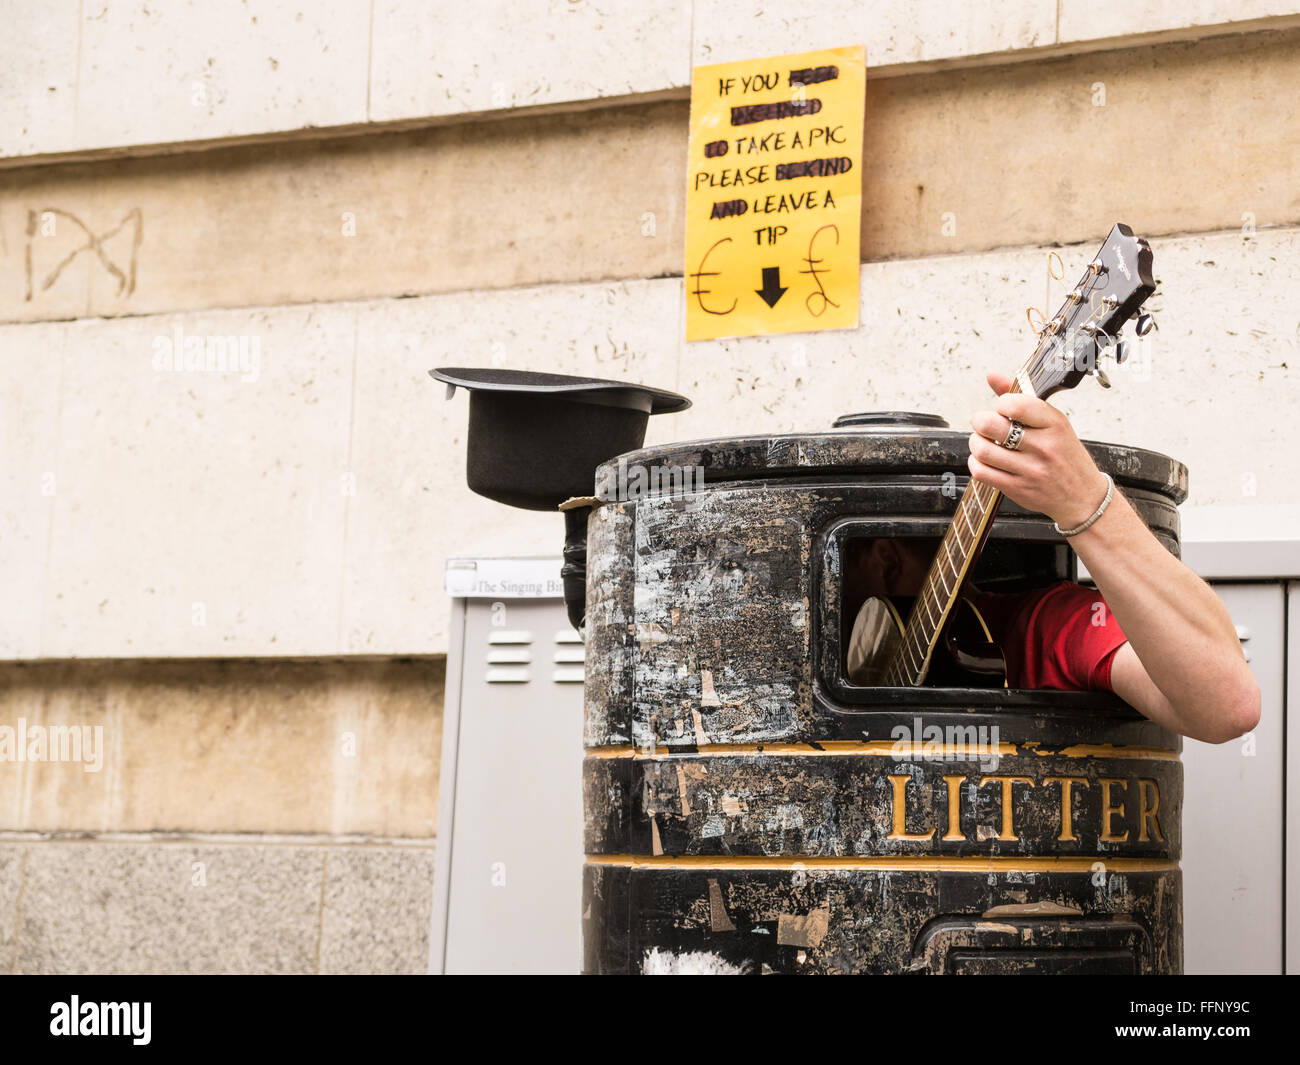 Busker singing and playing guitar inside a rubbish bin on a street. - Stock Image